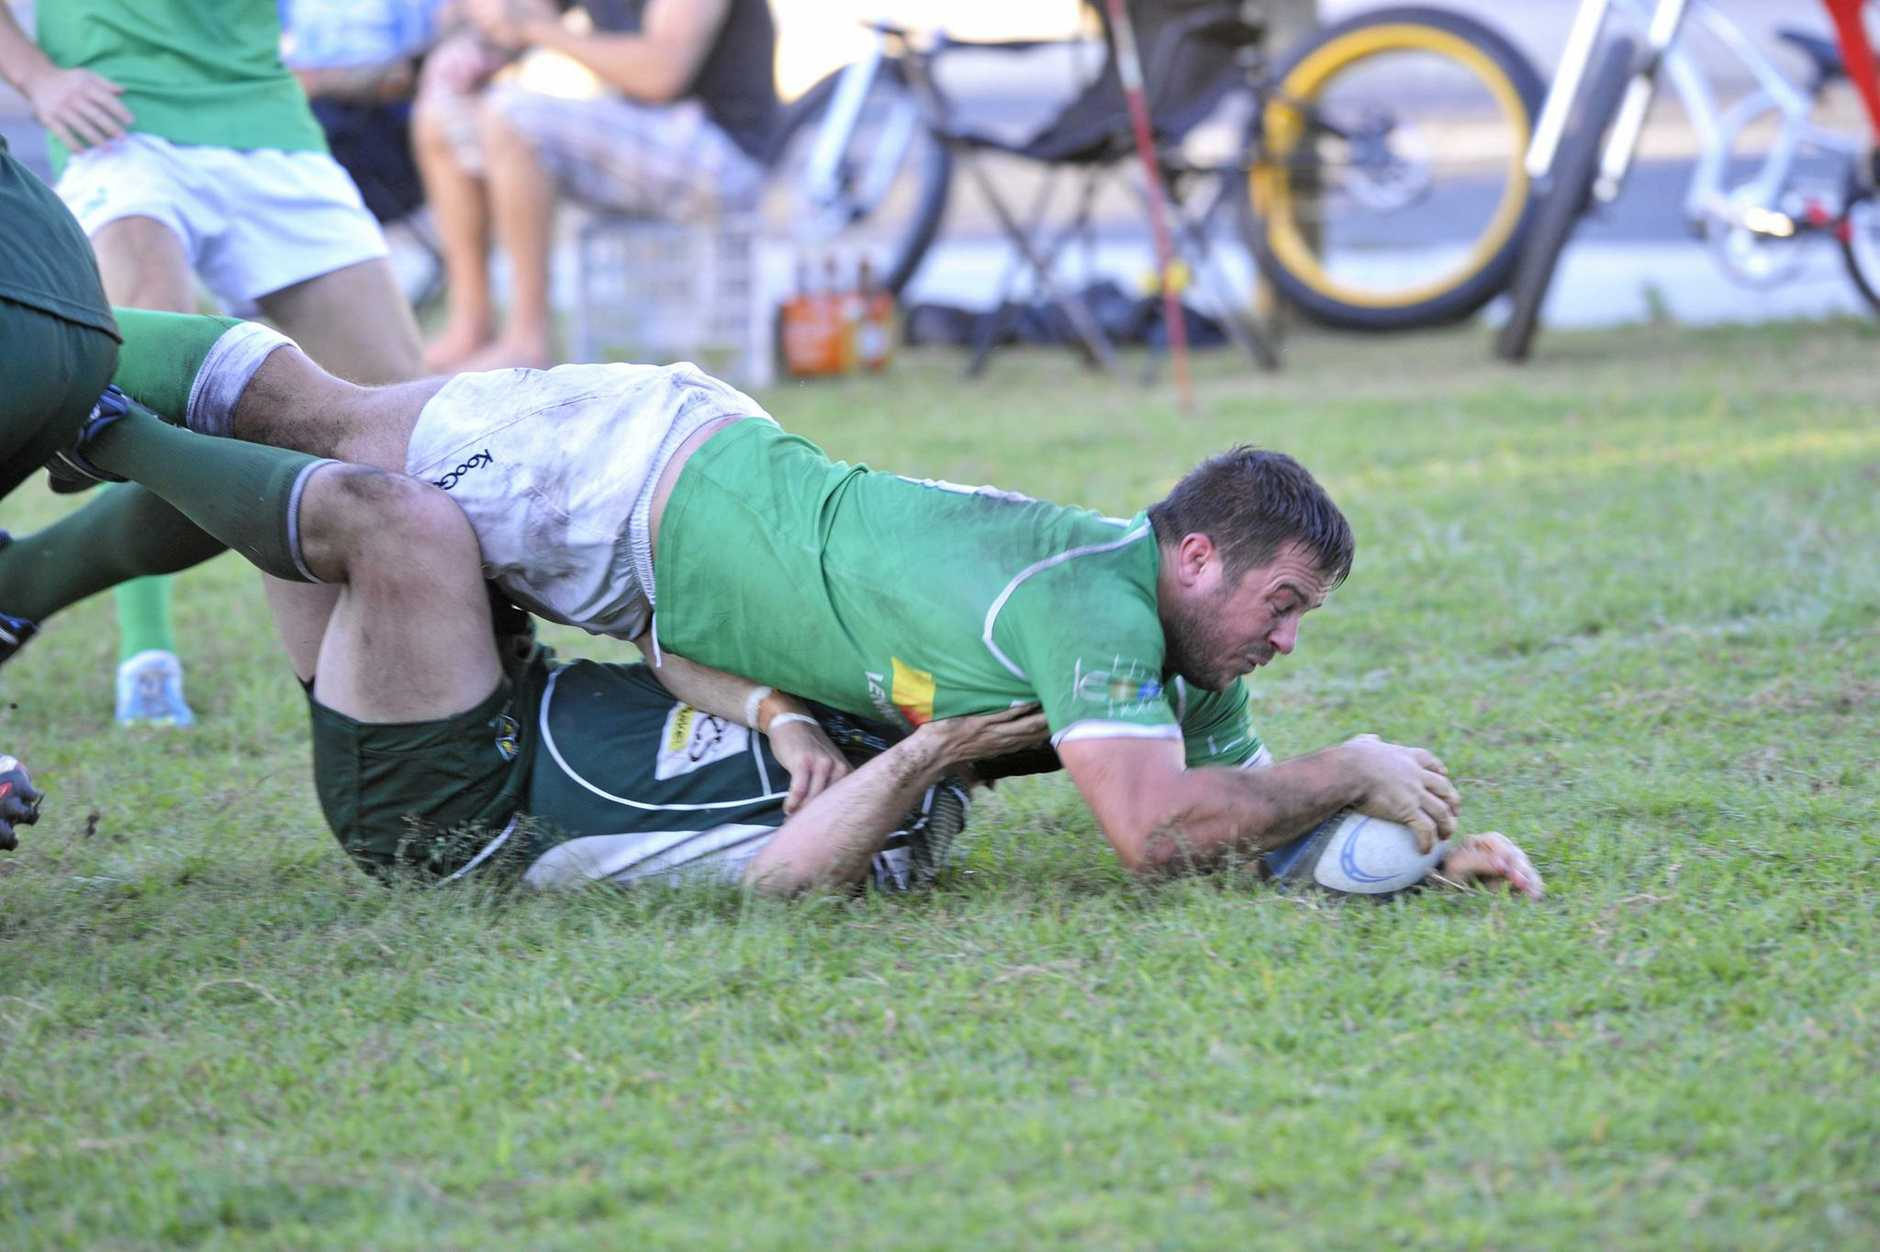 Lennox Head player Harry Witt scores a disallowed try during the game against Lismore City at Williams Reserve in Lennox Head. Photo Marc Stapelberg / The Northern Star